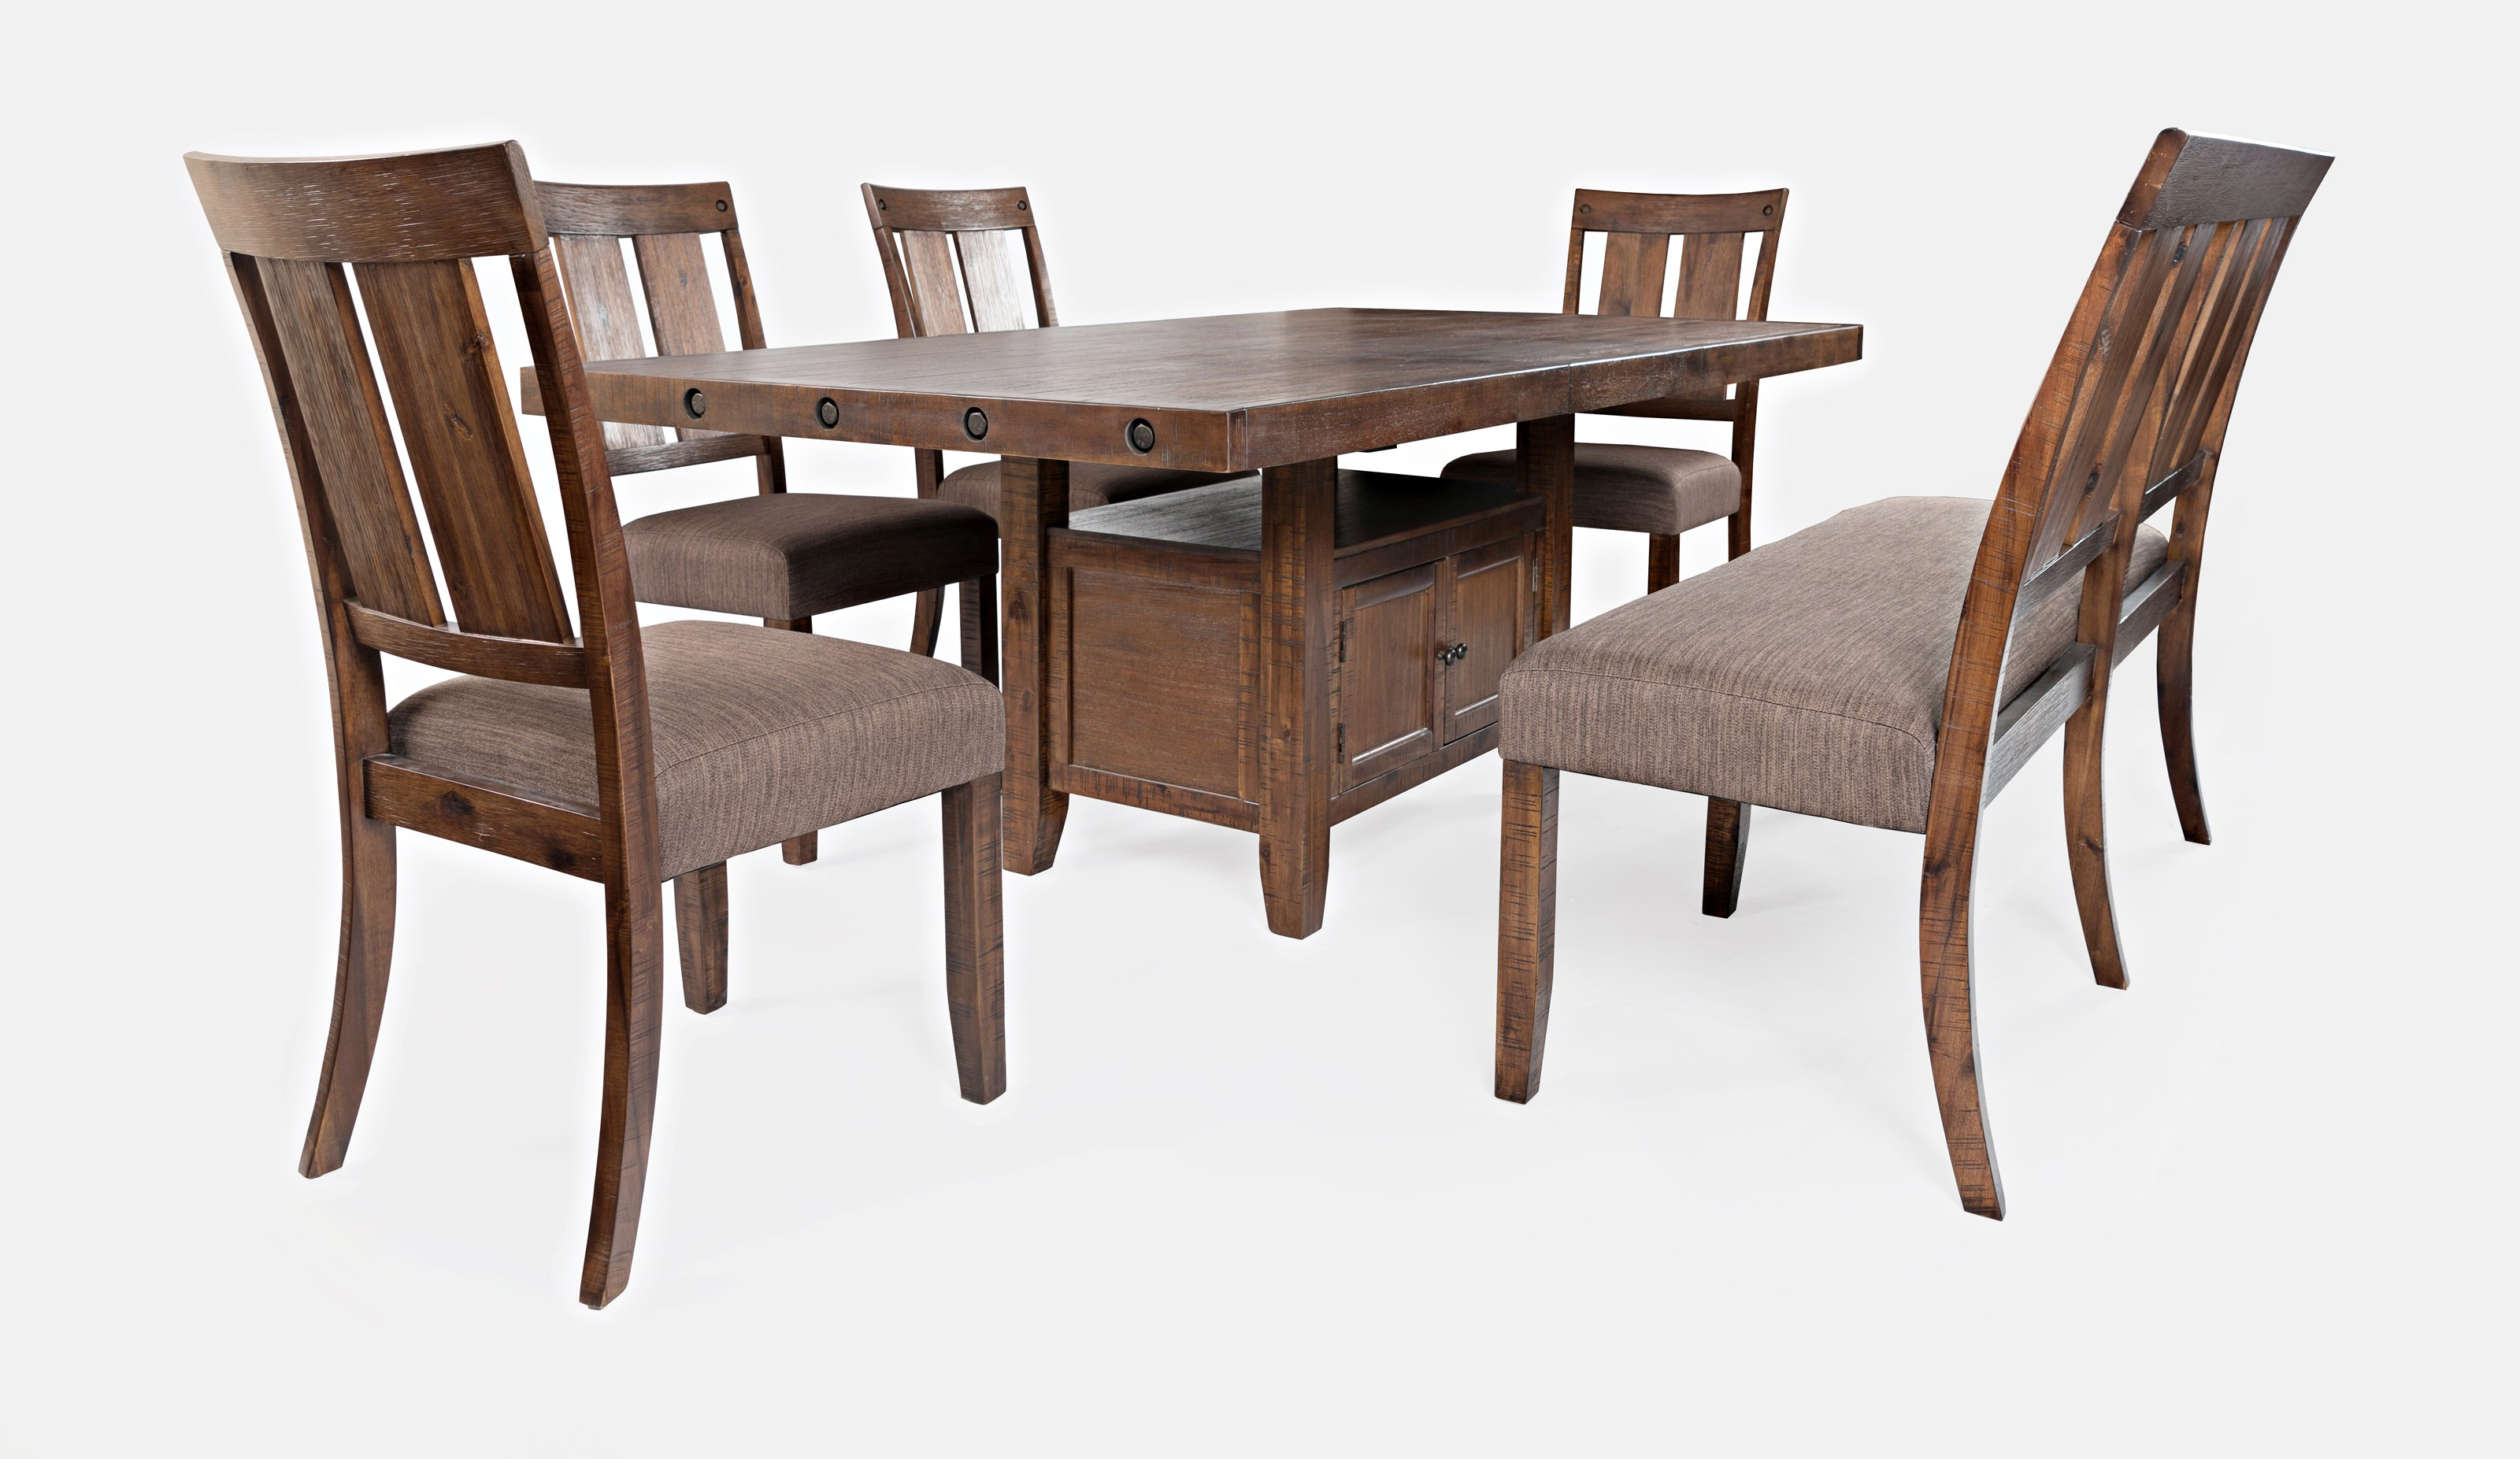 Mission Viejo Table and Chair Set with Bench by Jofran at Jofran